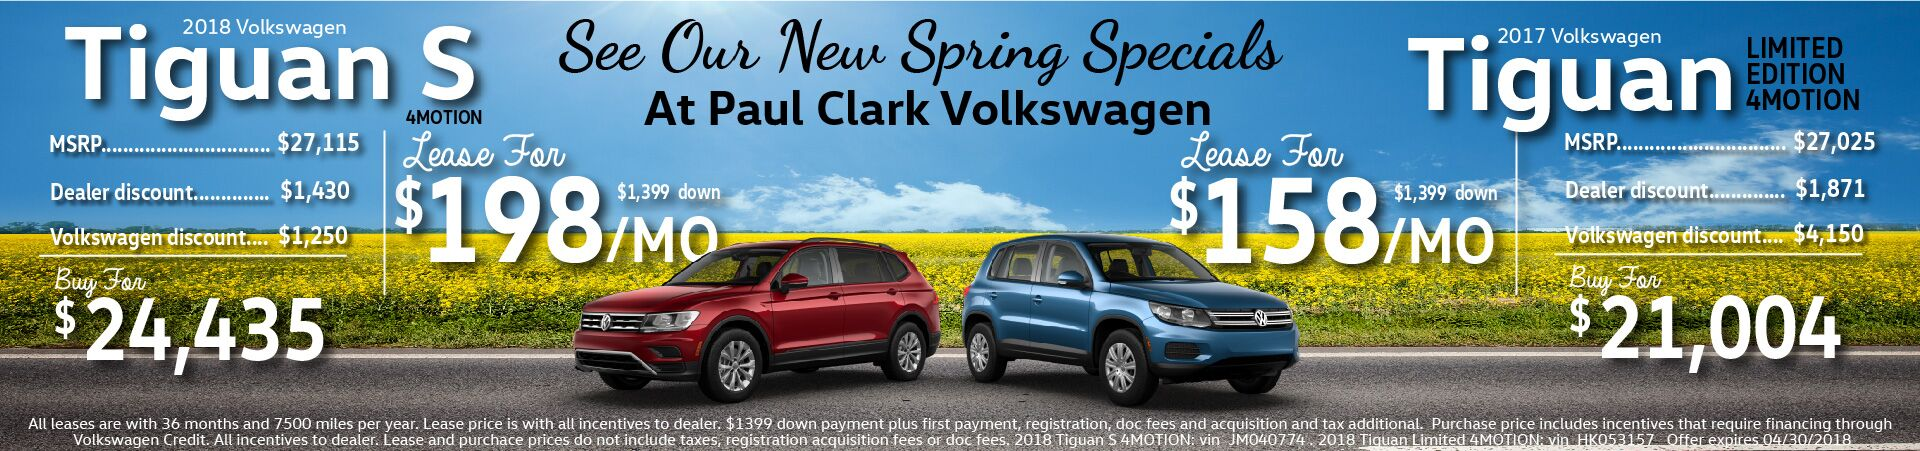 April 2018 Tiguan Offers